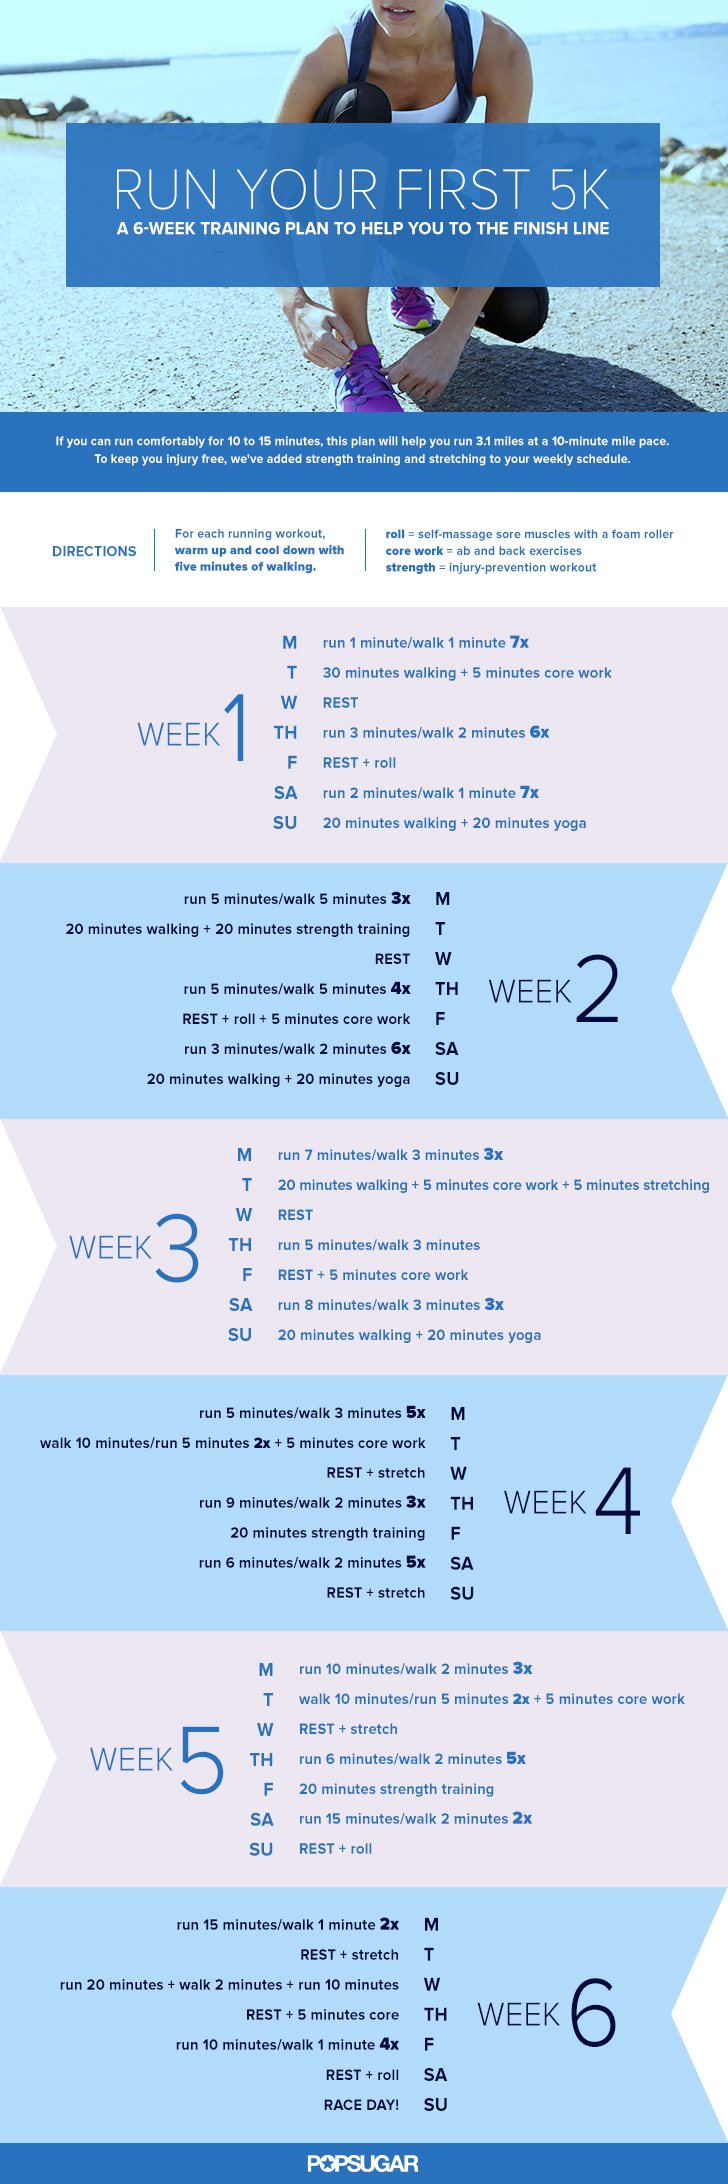 Info Graphic found at http://www.popsugar.com/fitness/5K-Training-Plan-Beginners-37018841